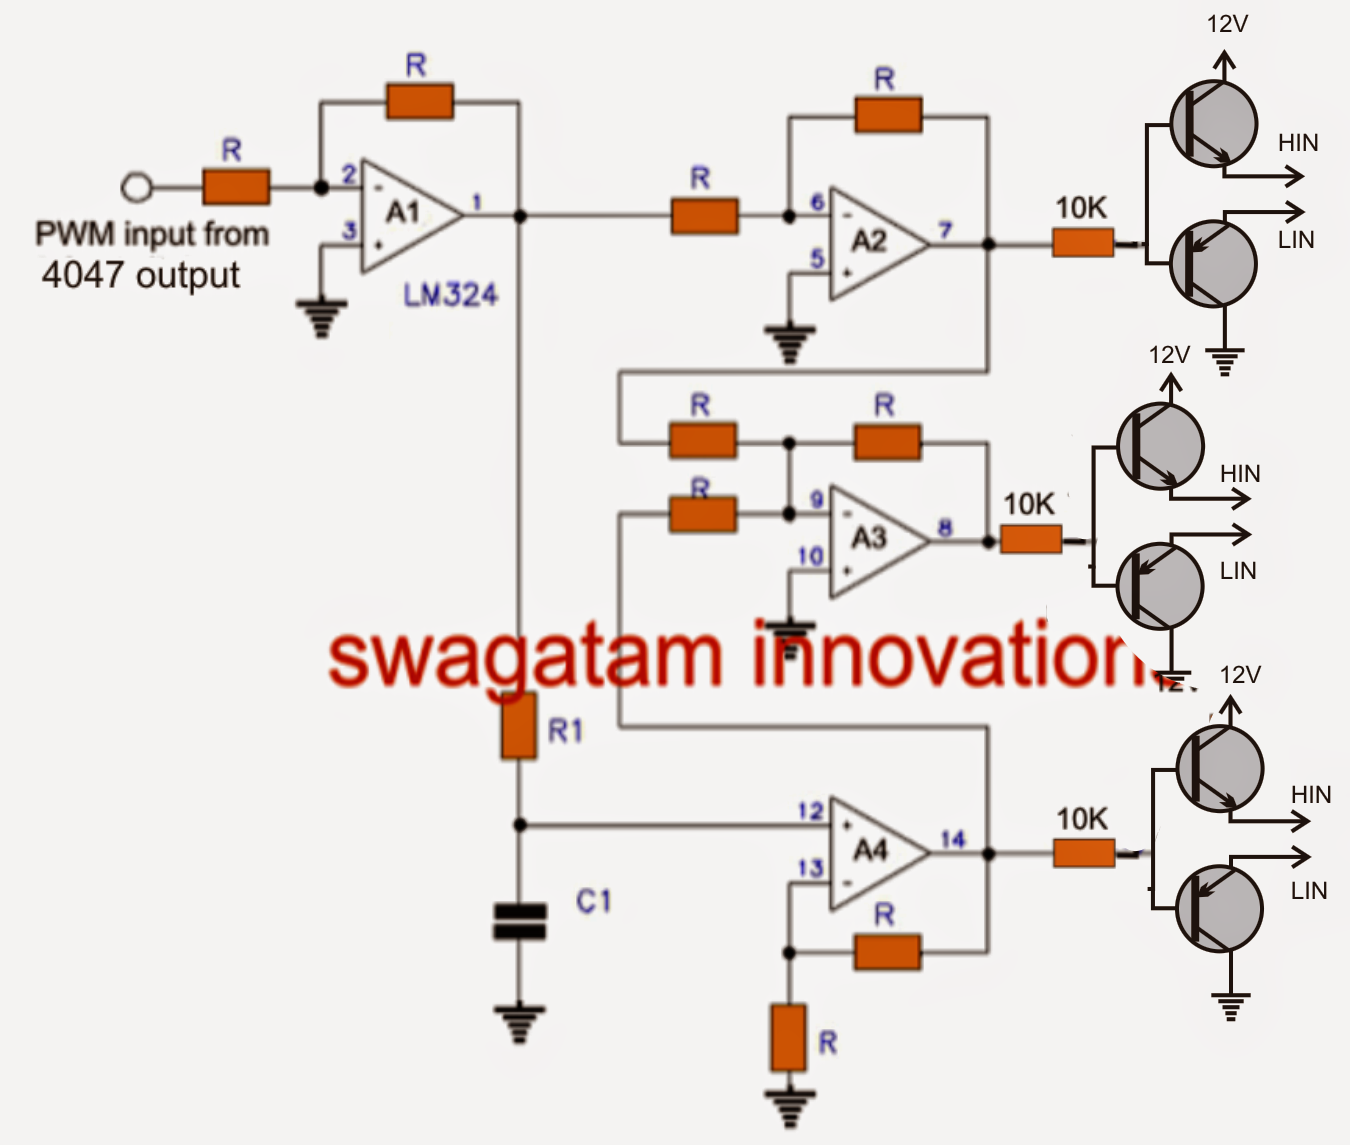 Wiring Diagram For 12 Wire 3 Phase Motor also Wiring Diagram For 3 Phase Motor With Circuit Free Download besides Baldor 3 Phase Motor Wiring Diagram Free Picture as well How To Wire A Motor Starter Issue 5 2005 besides Start Capacitors. on three phase drum switch wiring diagrams